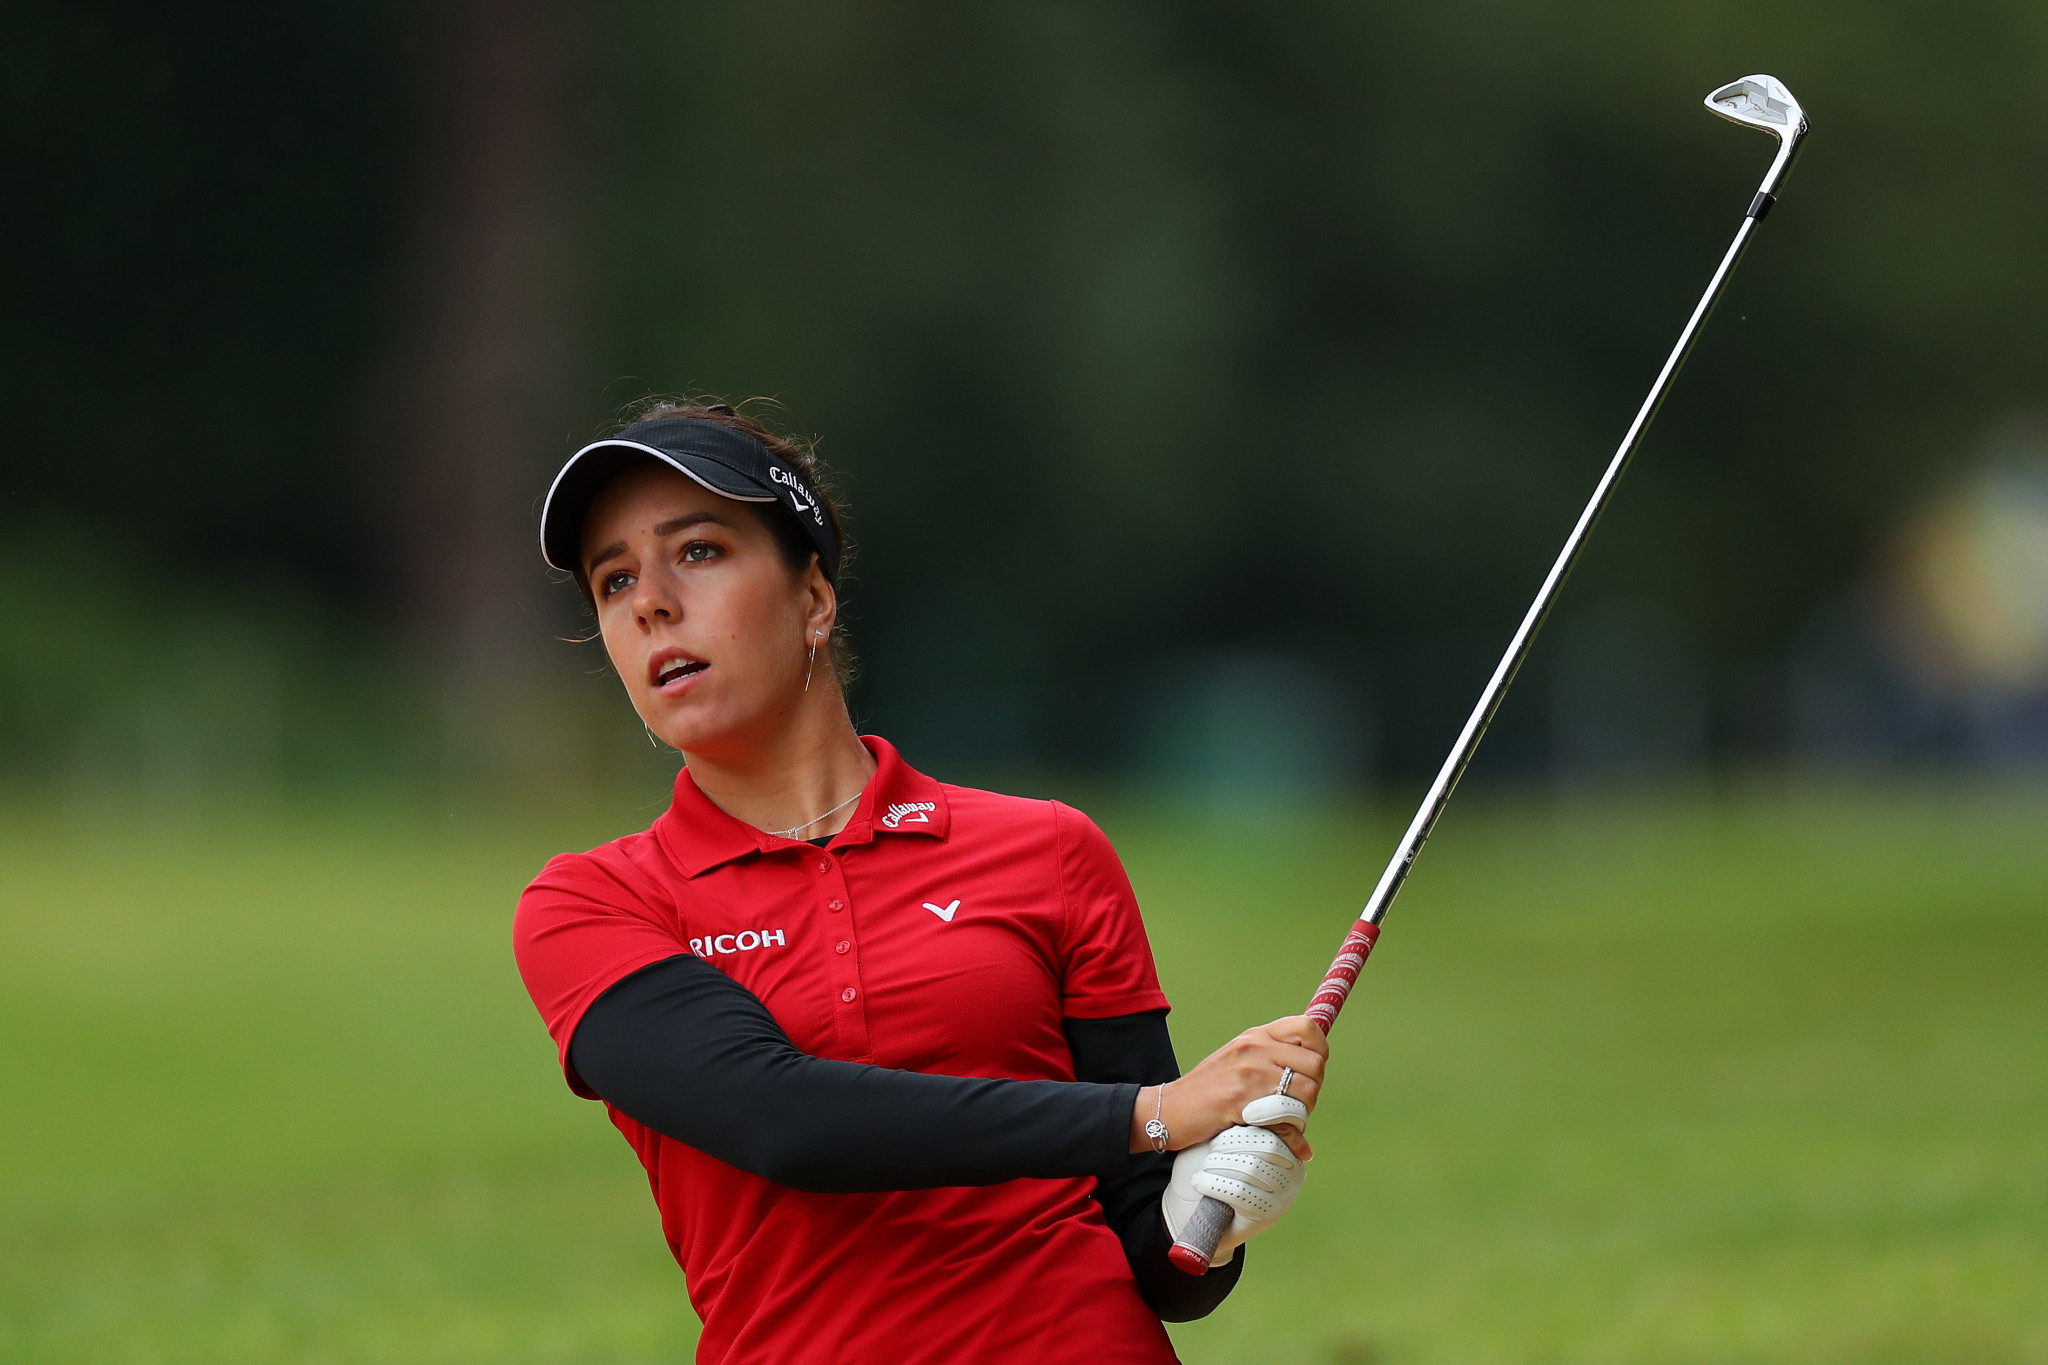 Hall out to defend title at Women's British Open and win back trophy stolen from her car